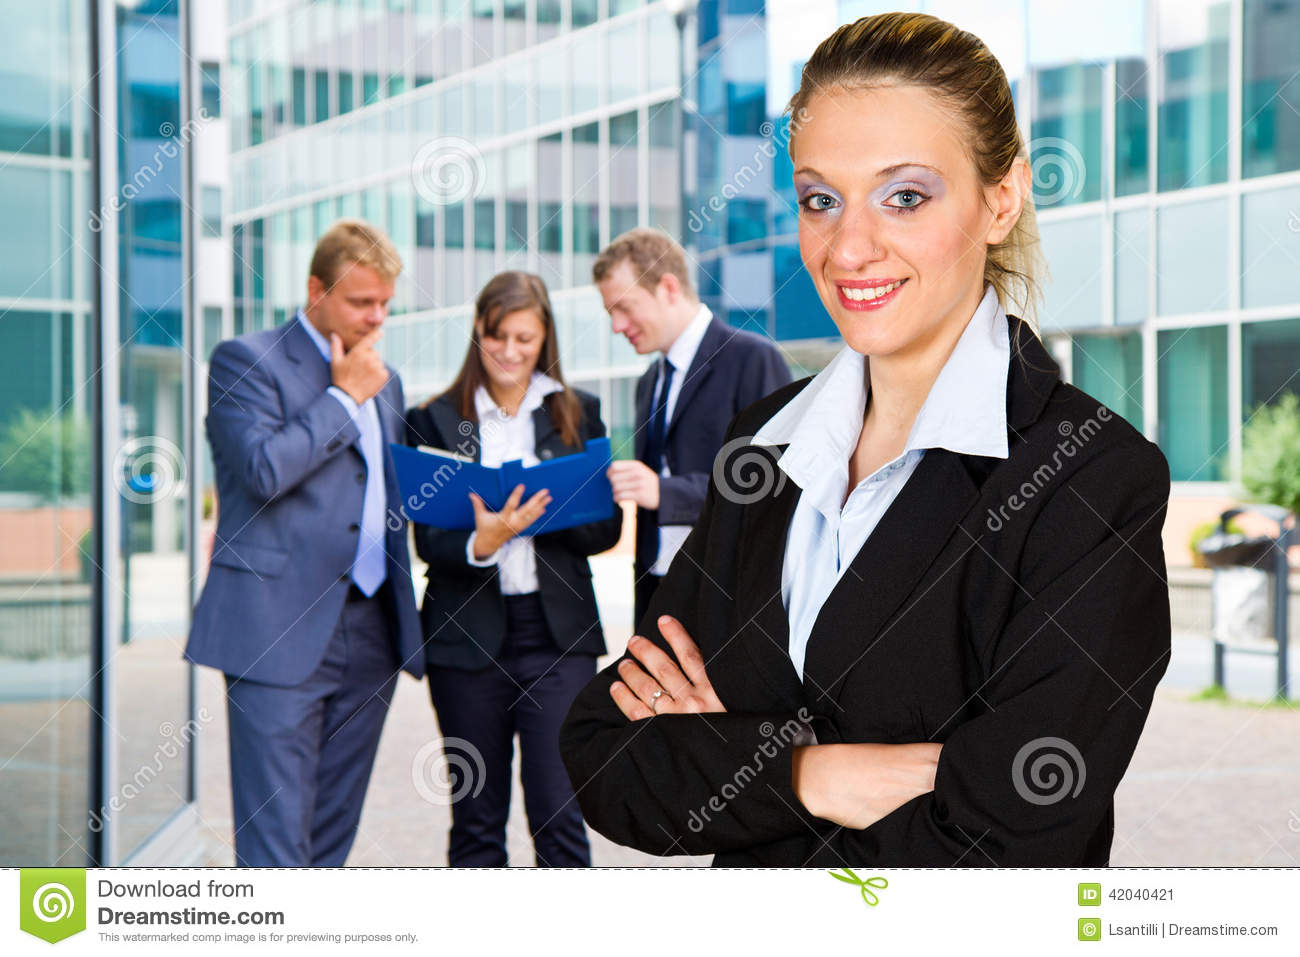 Business people with businesswoman leader on foreground